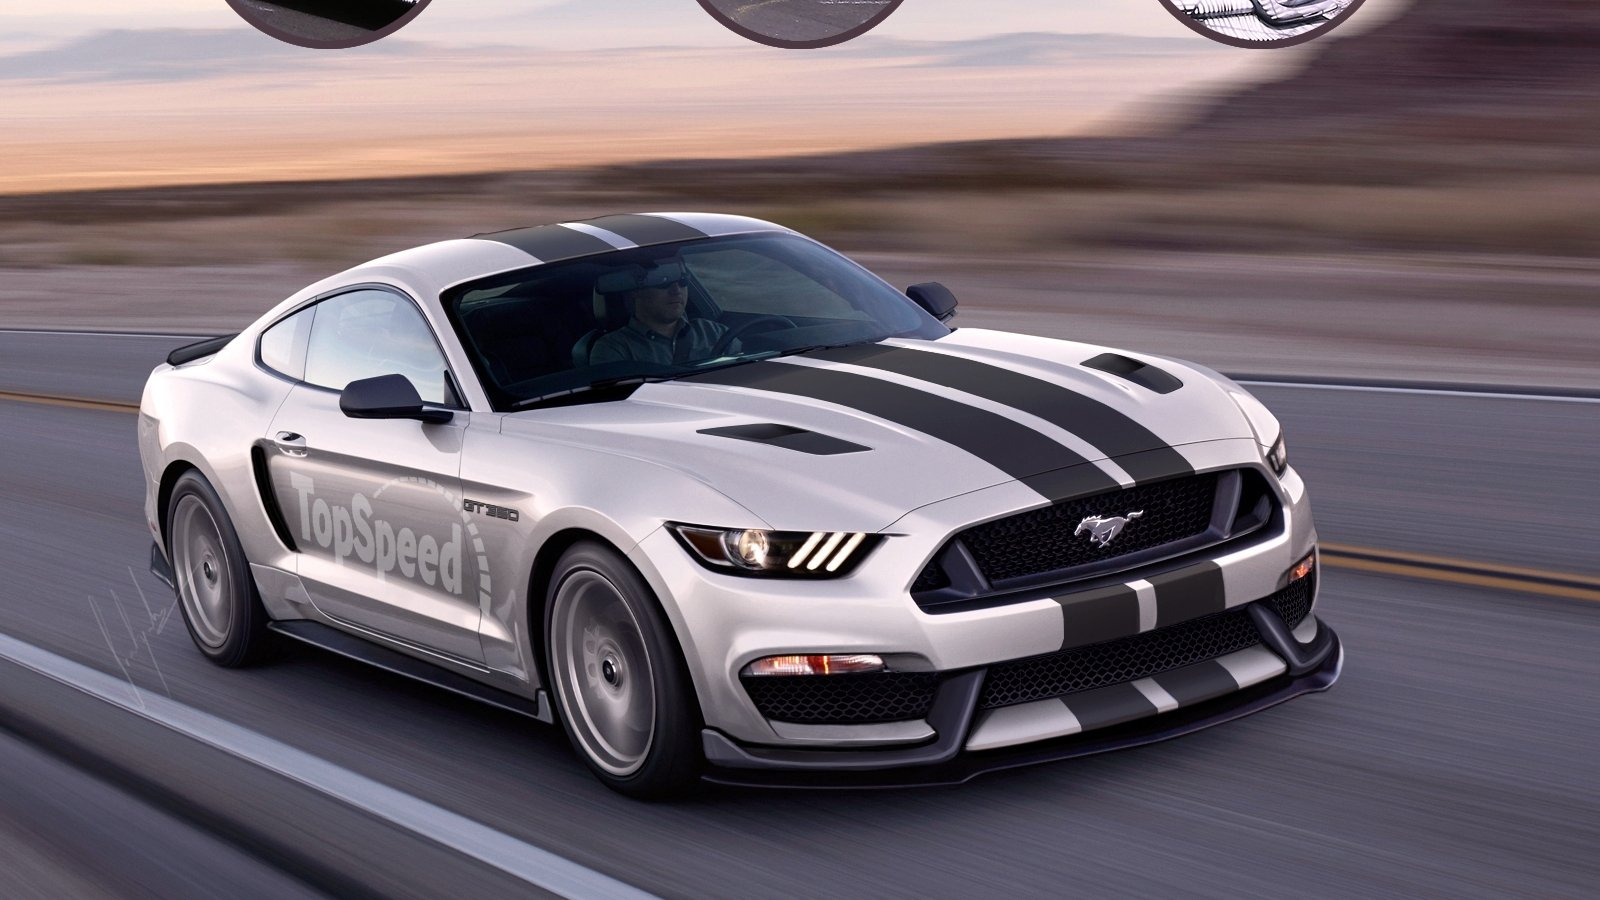 2016 2017 ford shelby gt350 mustang picture 577892 car review top speed. Black Bedroom Furniture Sets. Home Design Ideas